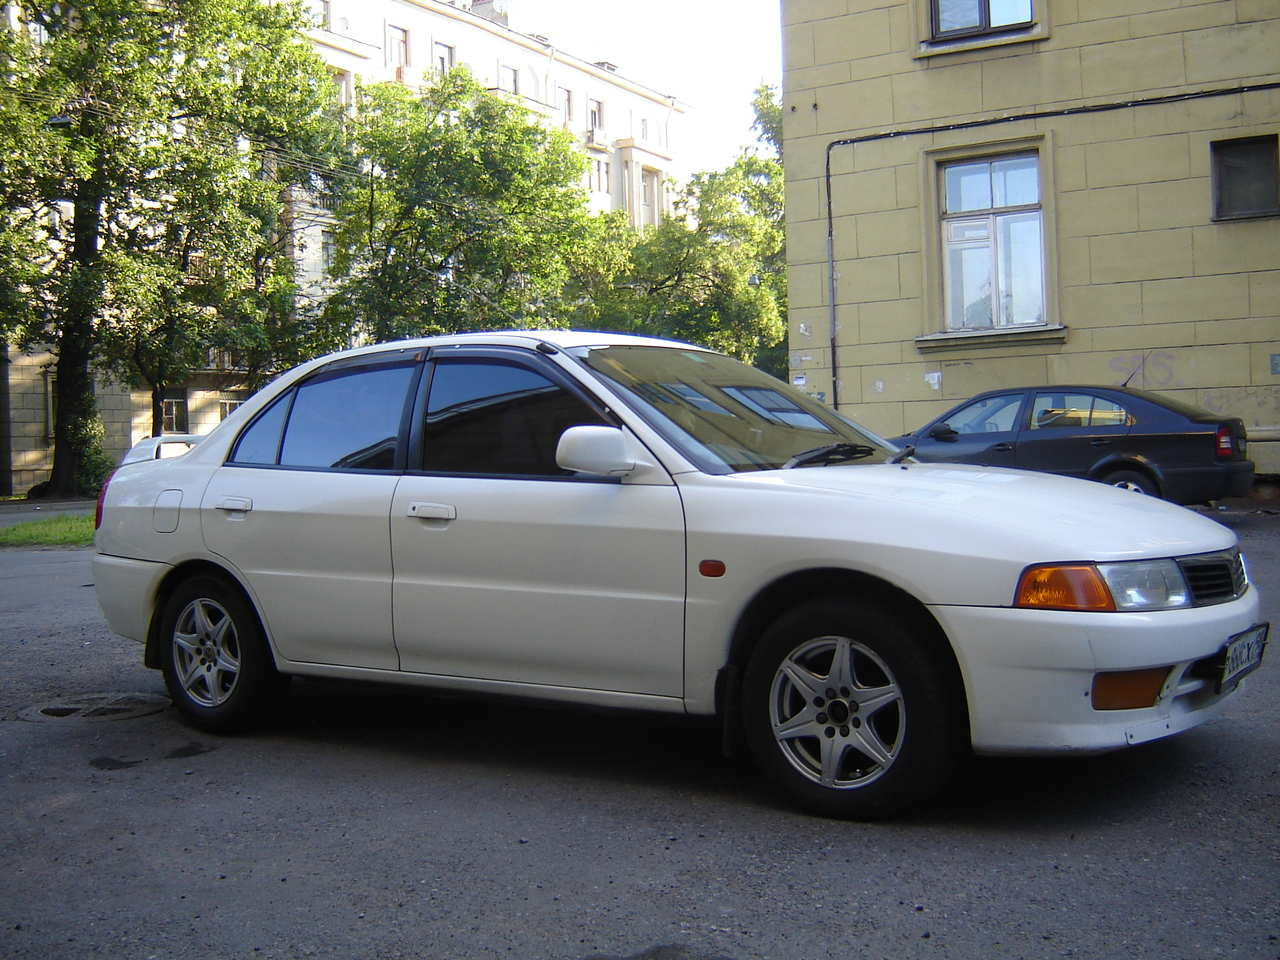 1998 Mitsubishi Lancer Specs  Engine Size 1 5  Fuel Type